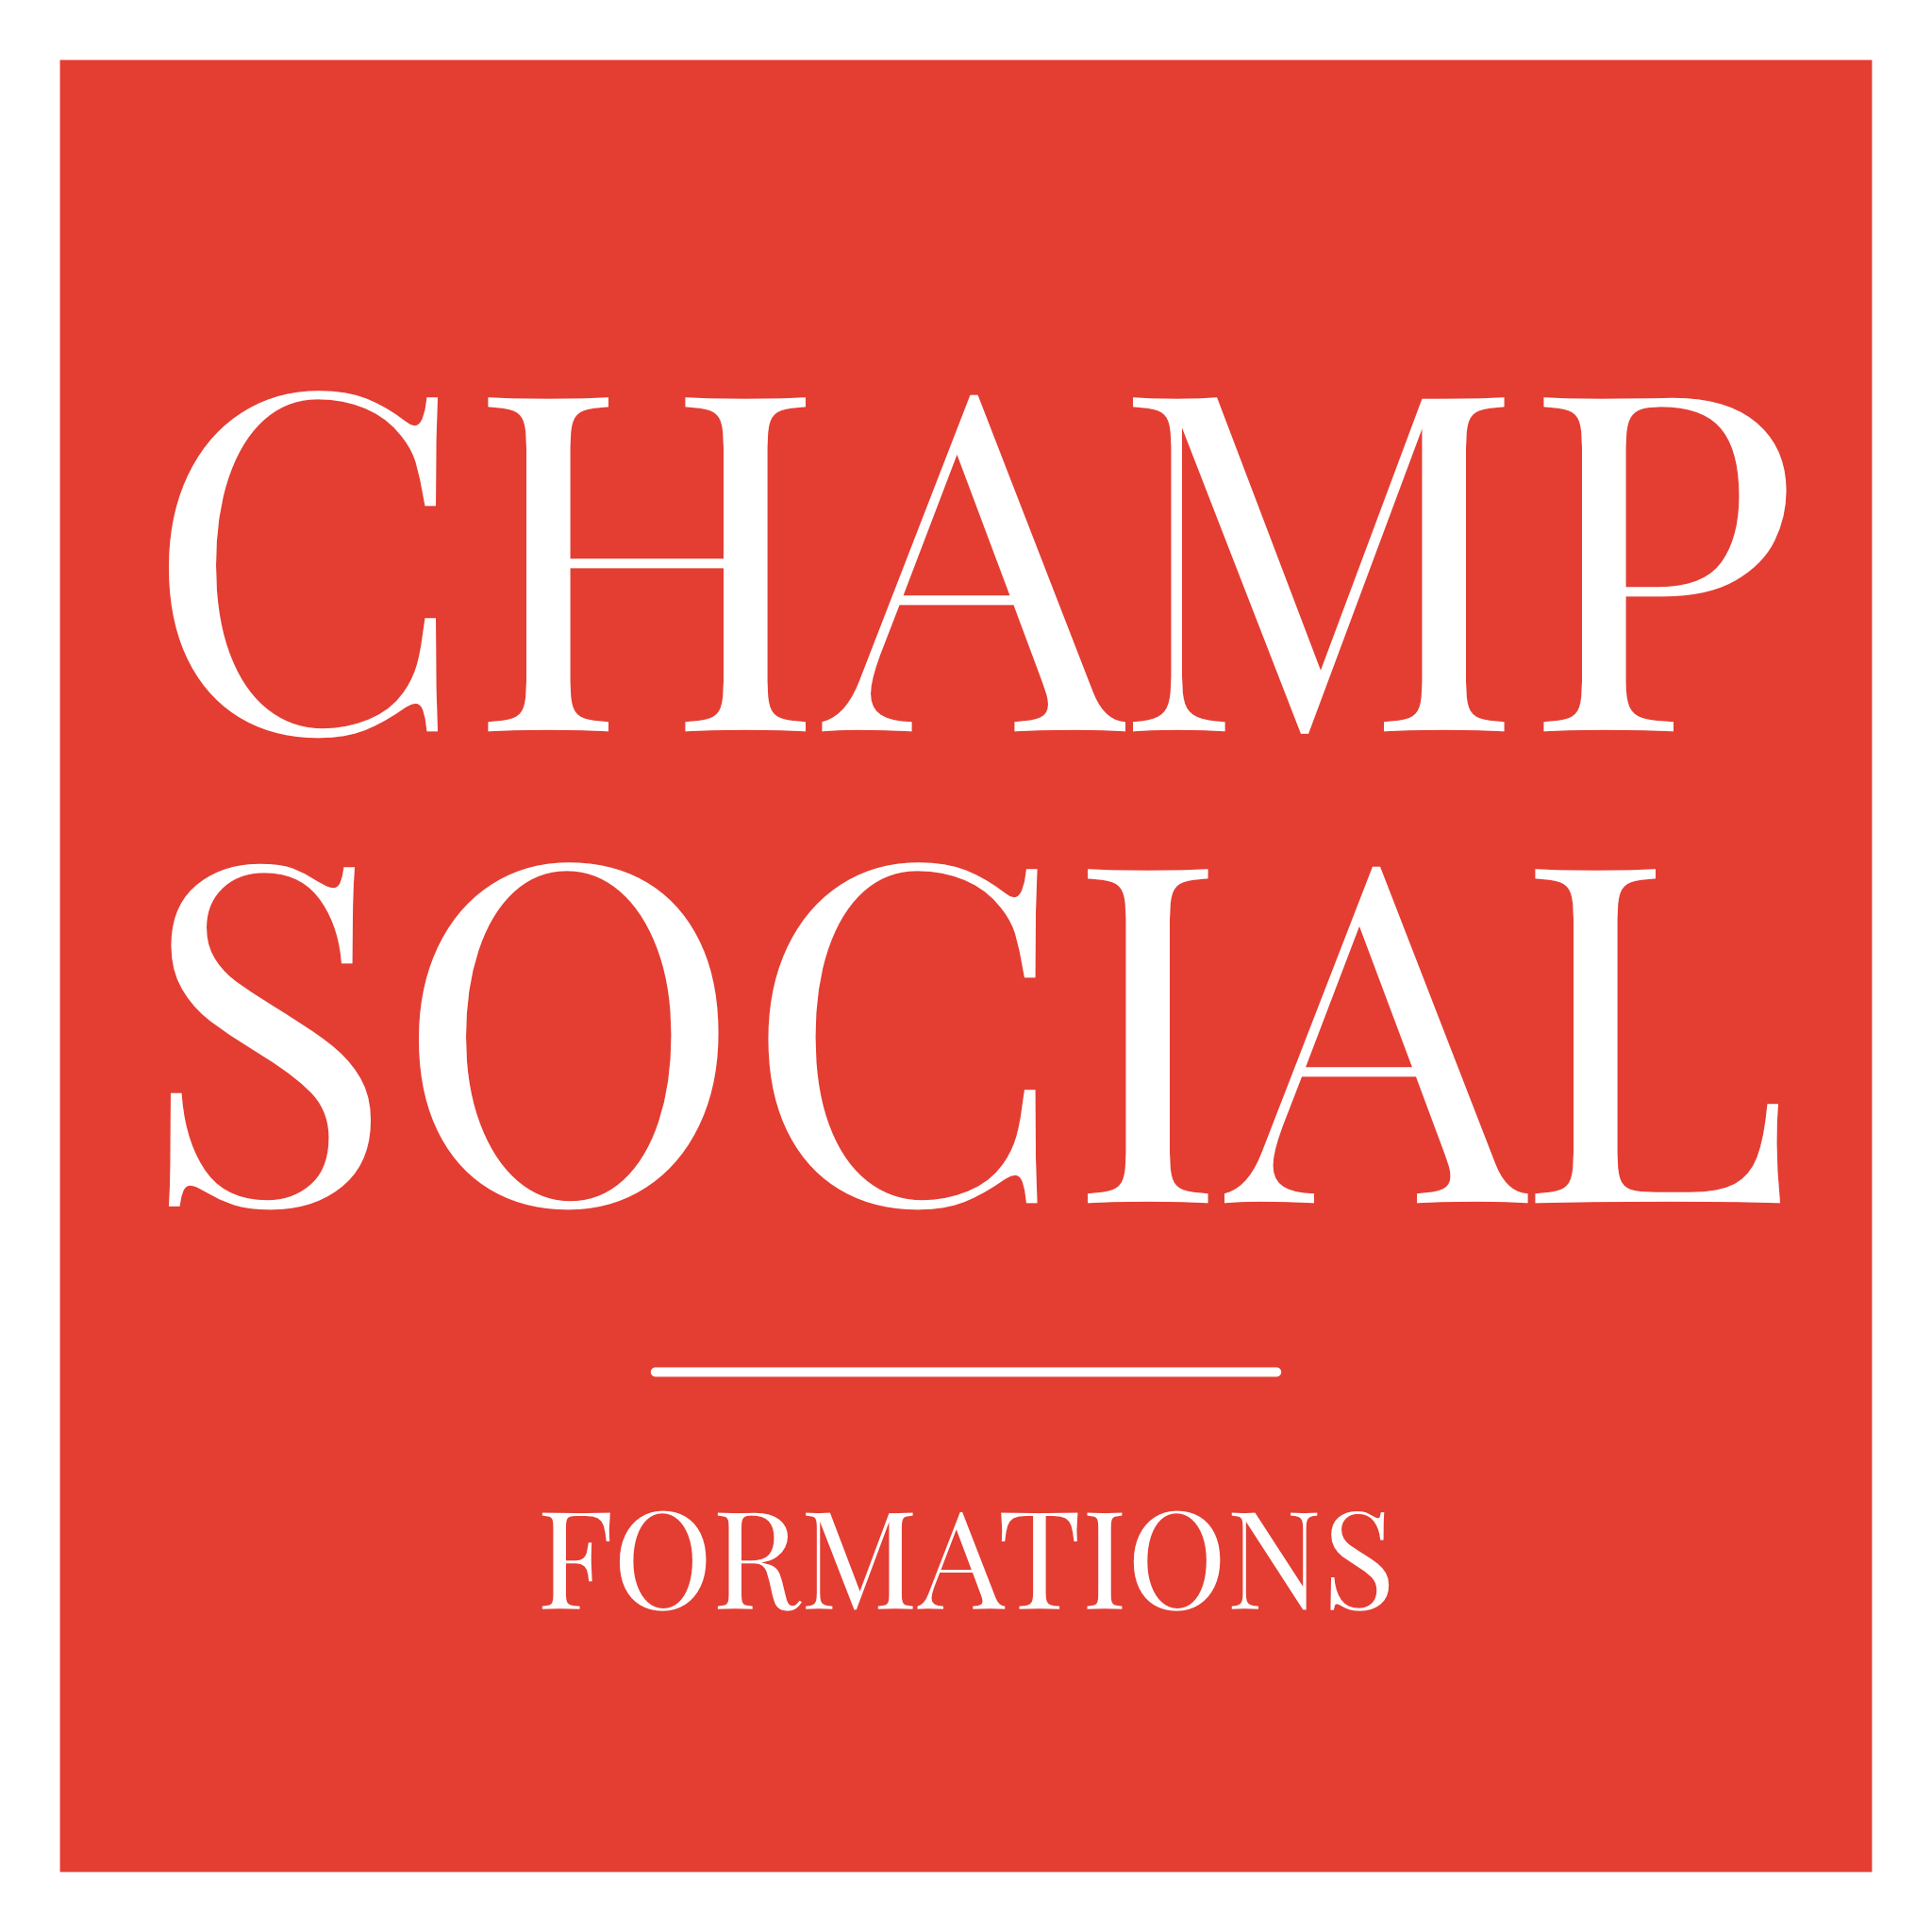 Champ Social Formations